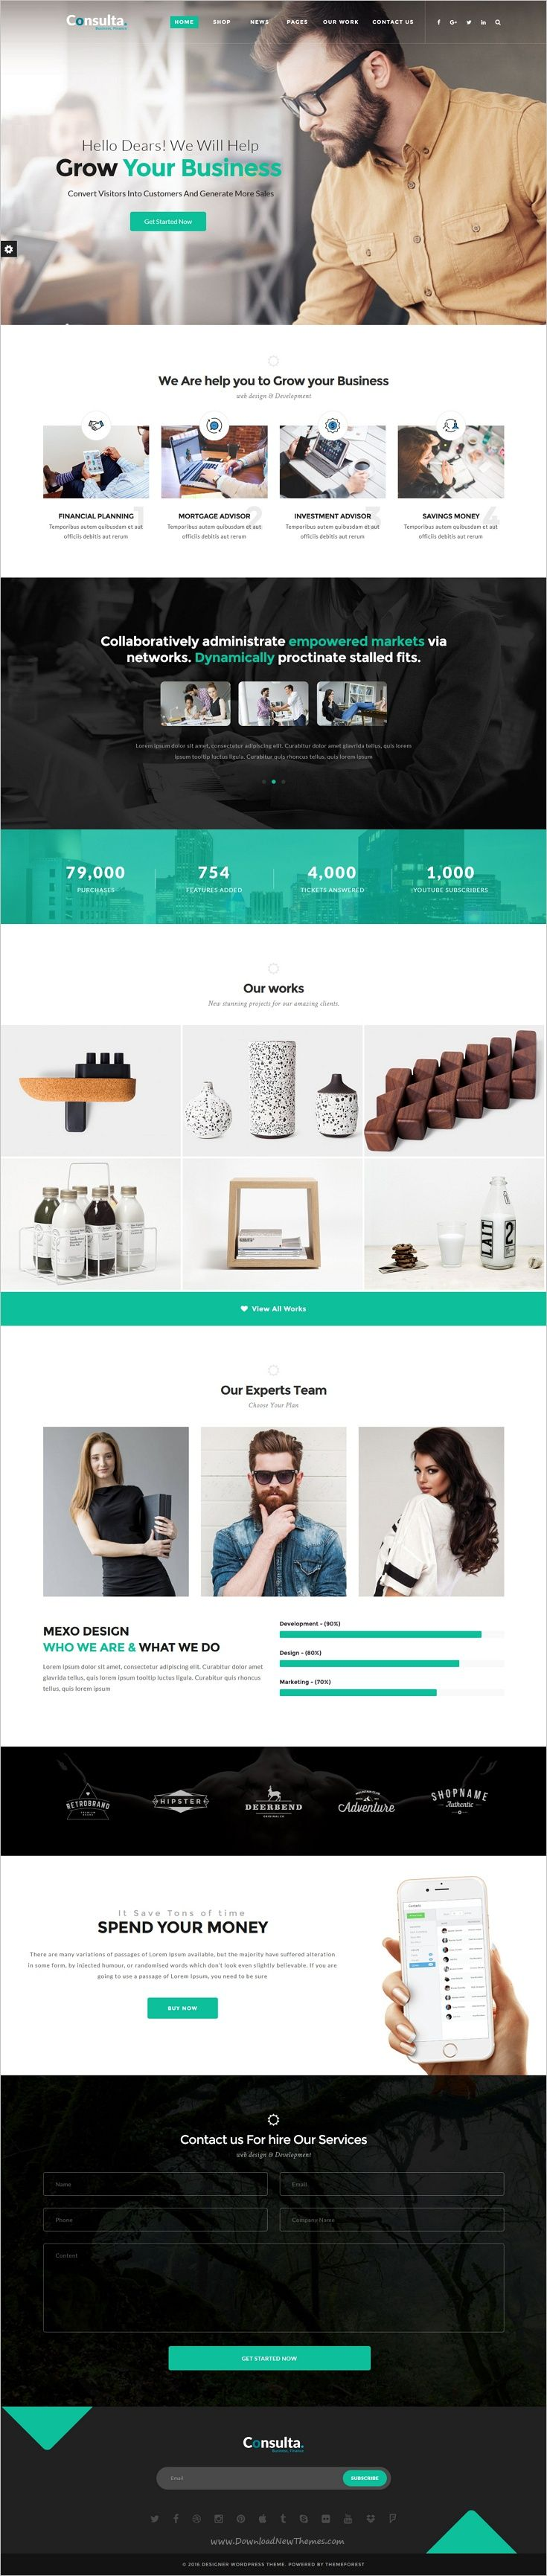 Consulta is beautifully design responsive #WordPress #theme best suited for corporate website like #Financial #Advisor, Accountant, Consulting Firms website with 10+ unique homepage layouts download now➩  https://themeforest.net/item/consulta-professional-business-financial-wordpress-theme/17654125?ref=Datasata